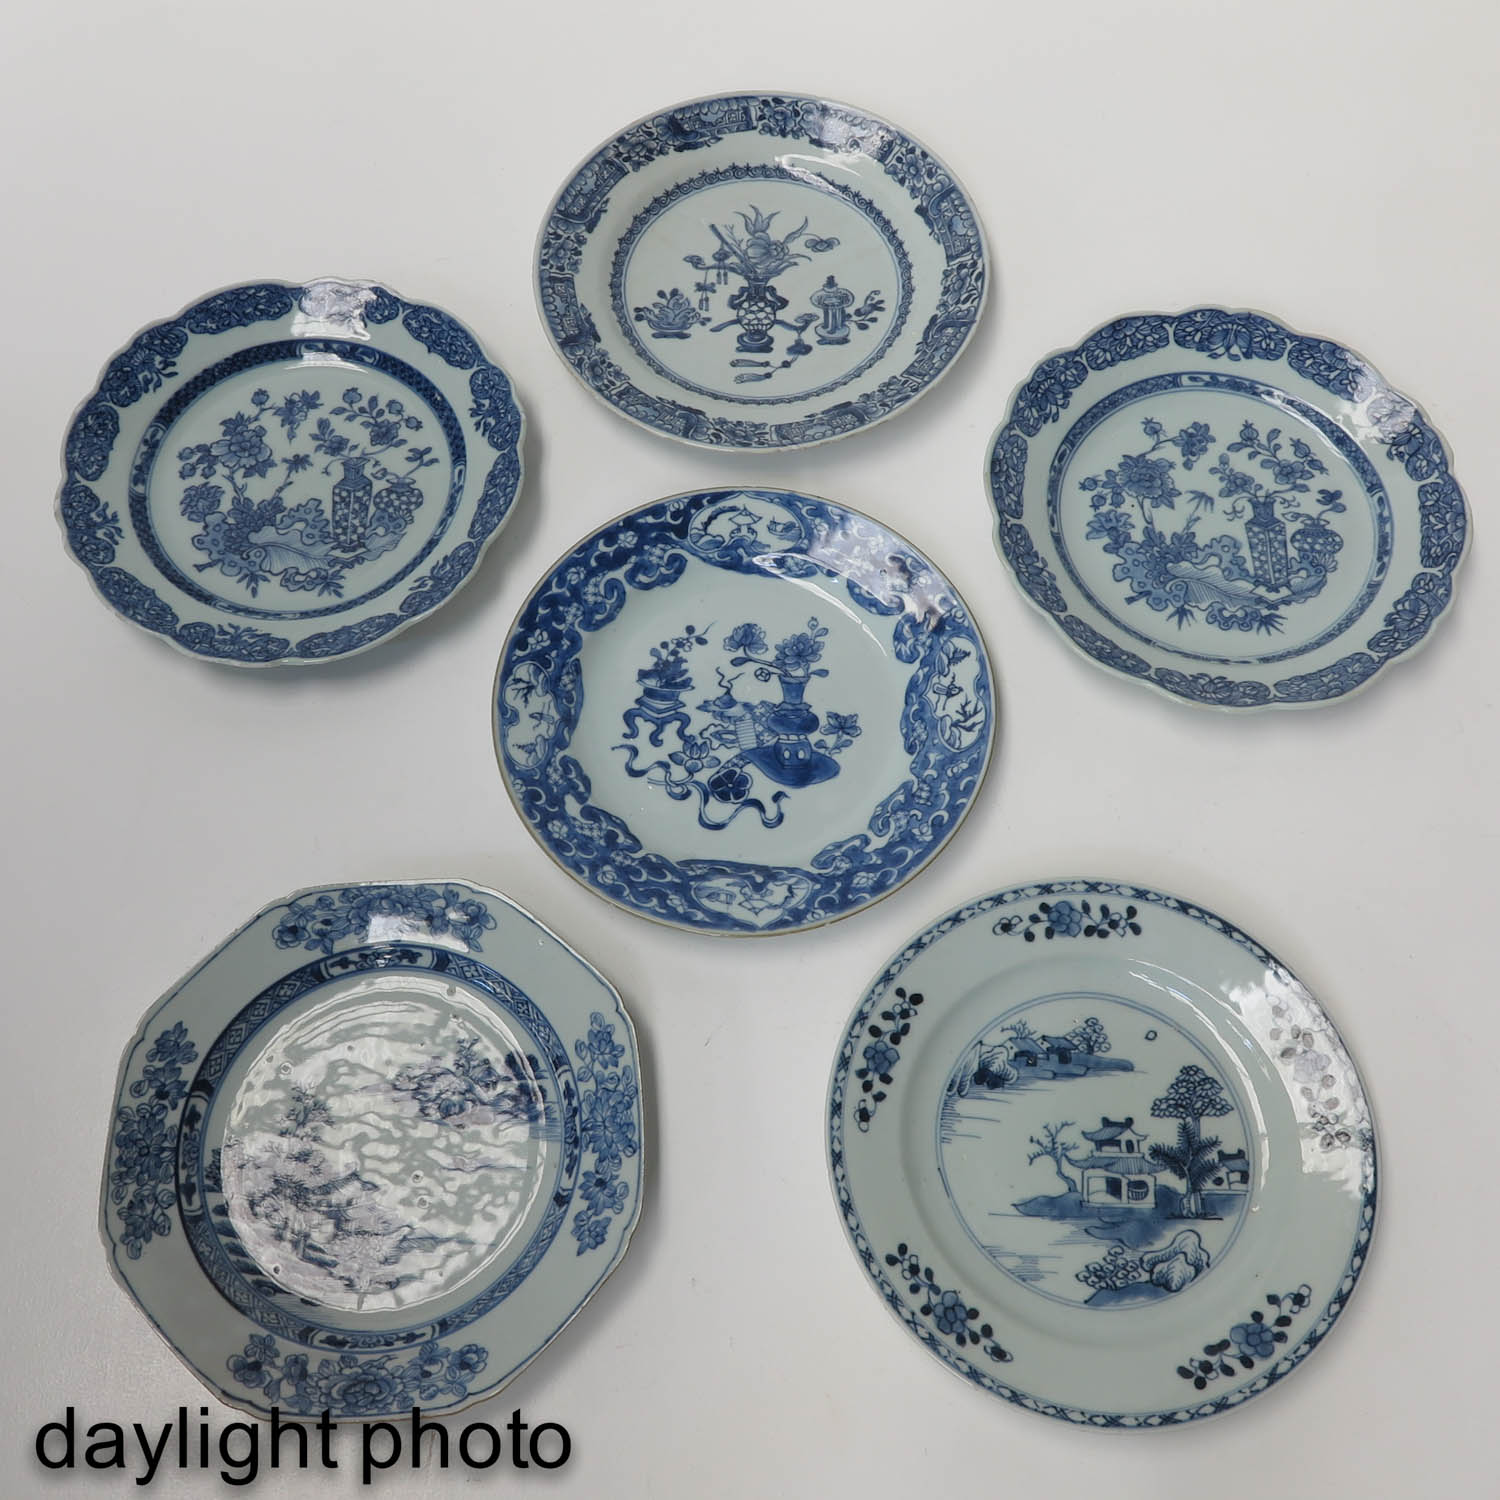 A Set of 6 Blue and White Plates - Image 9 of 10